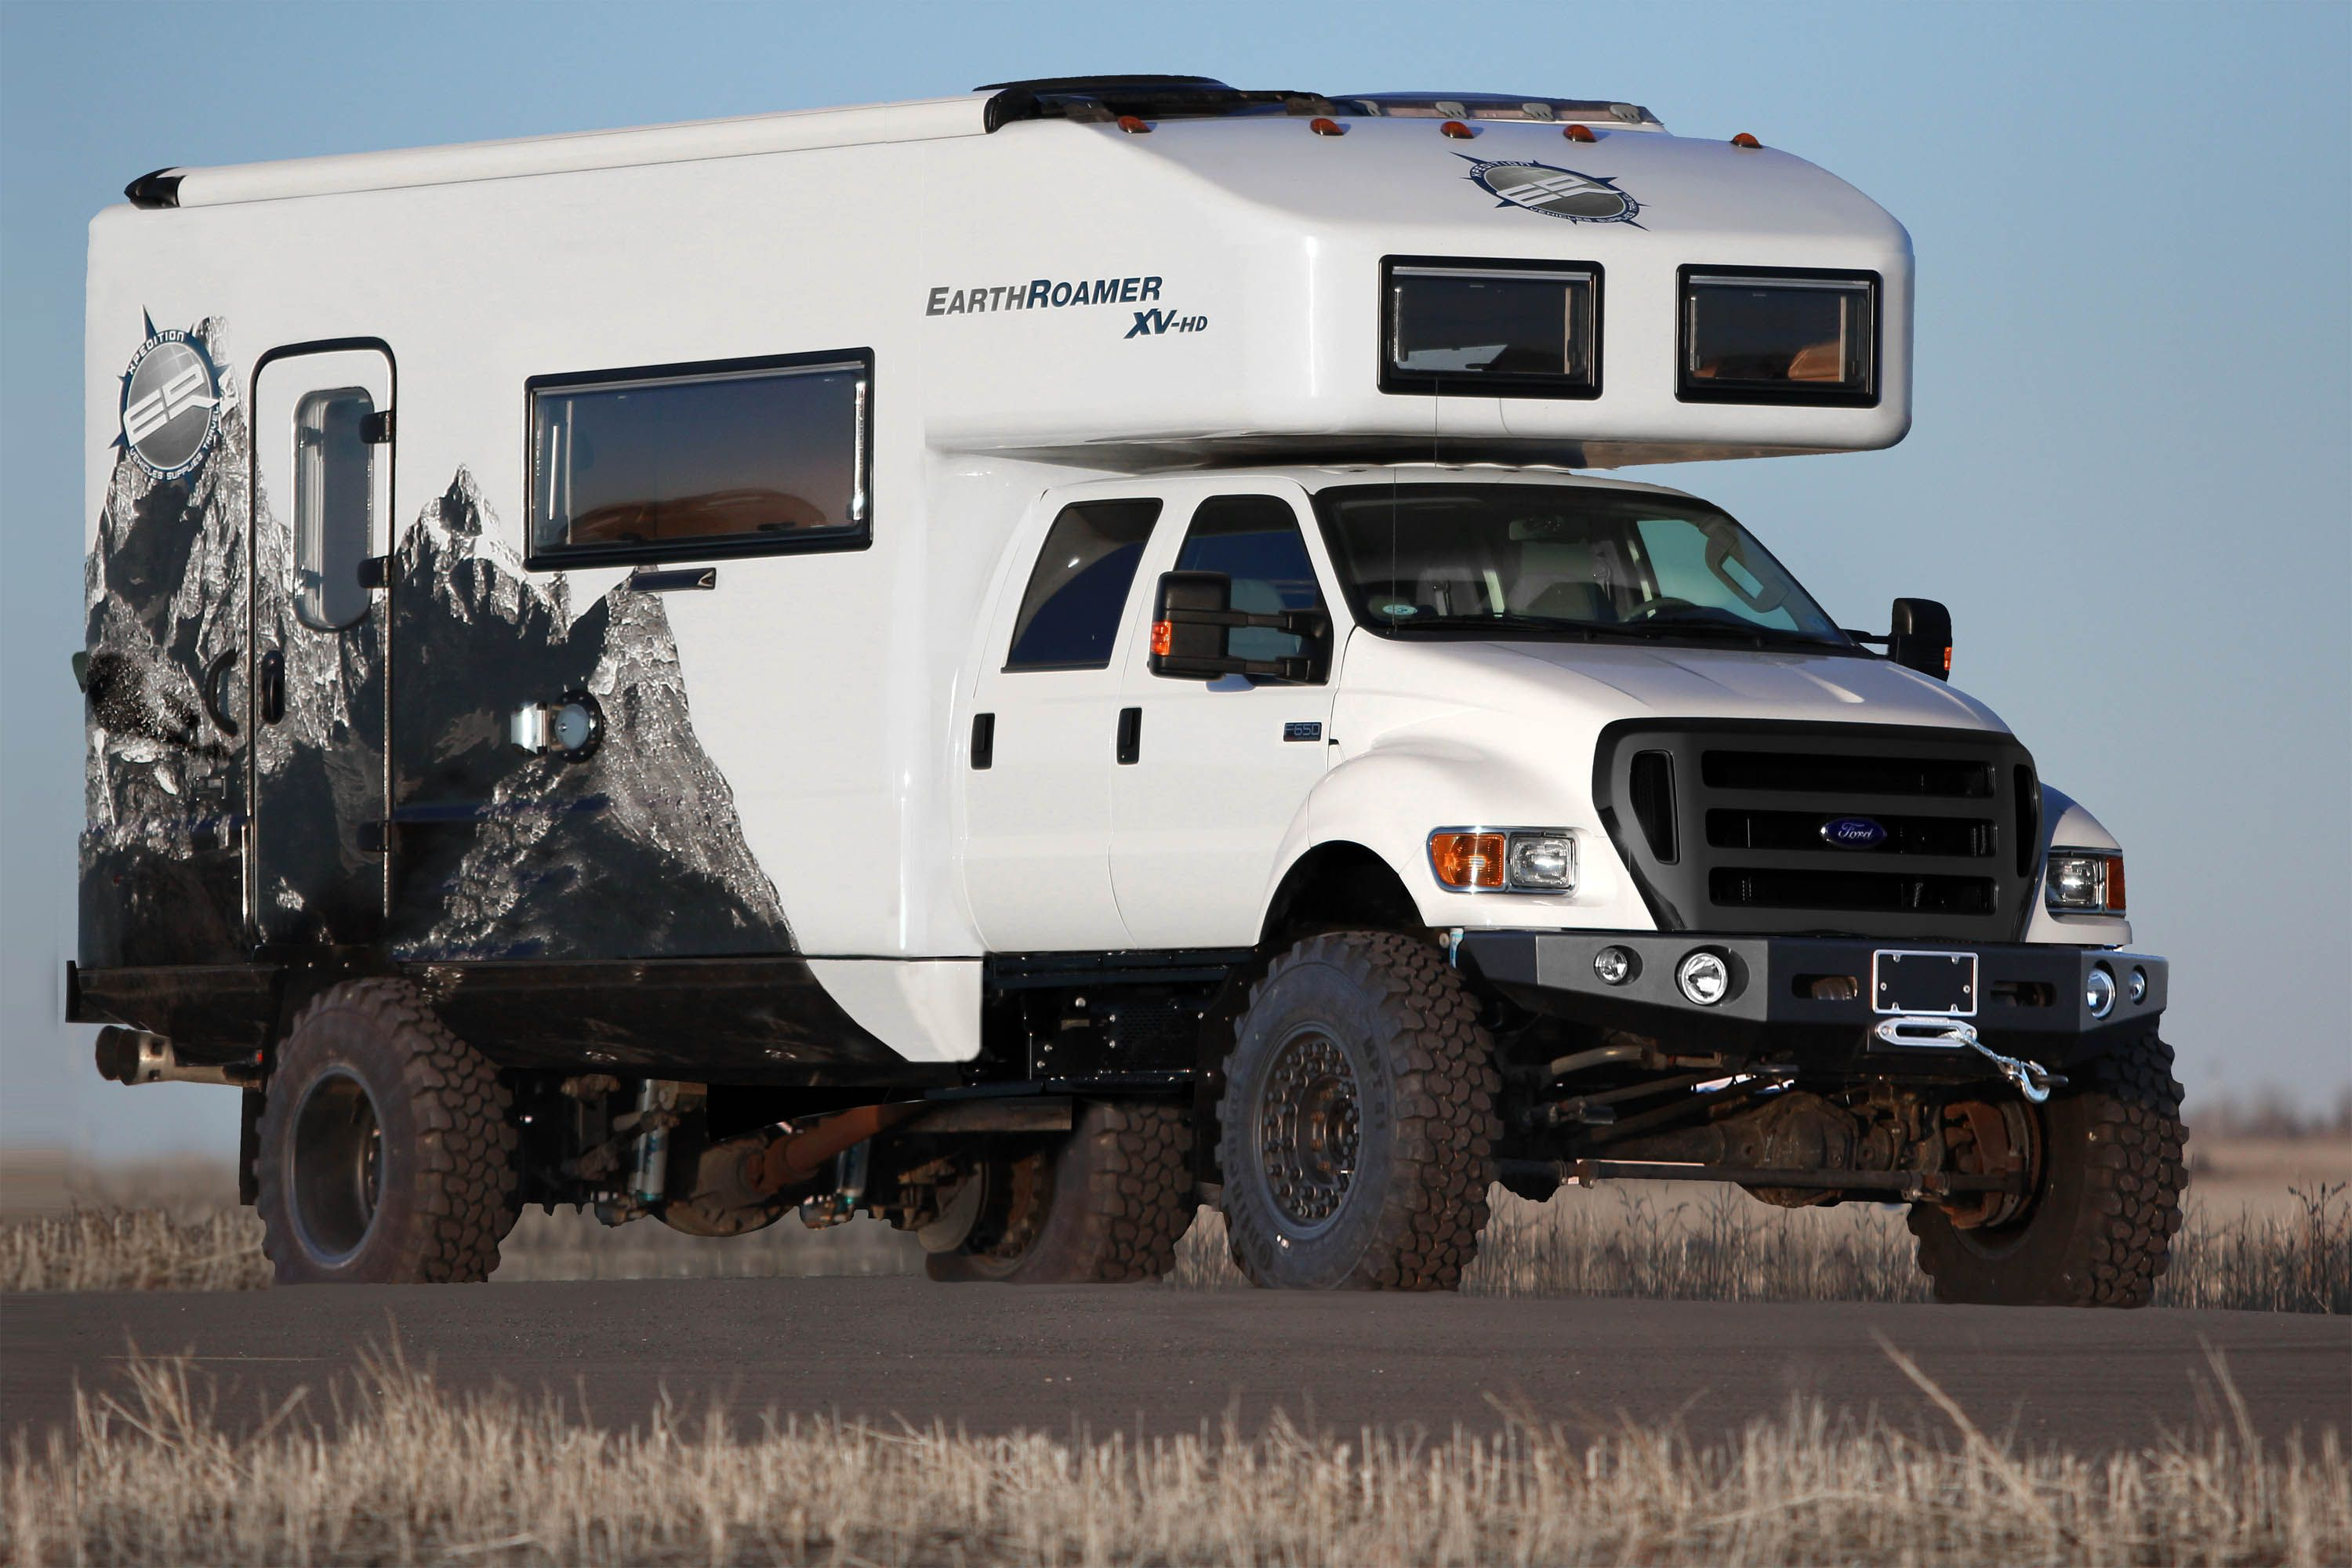 Earthroamer earthroamer xpedition vehicle pin my ride pinterest expedition vehicle cars and 4x4